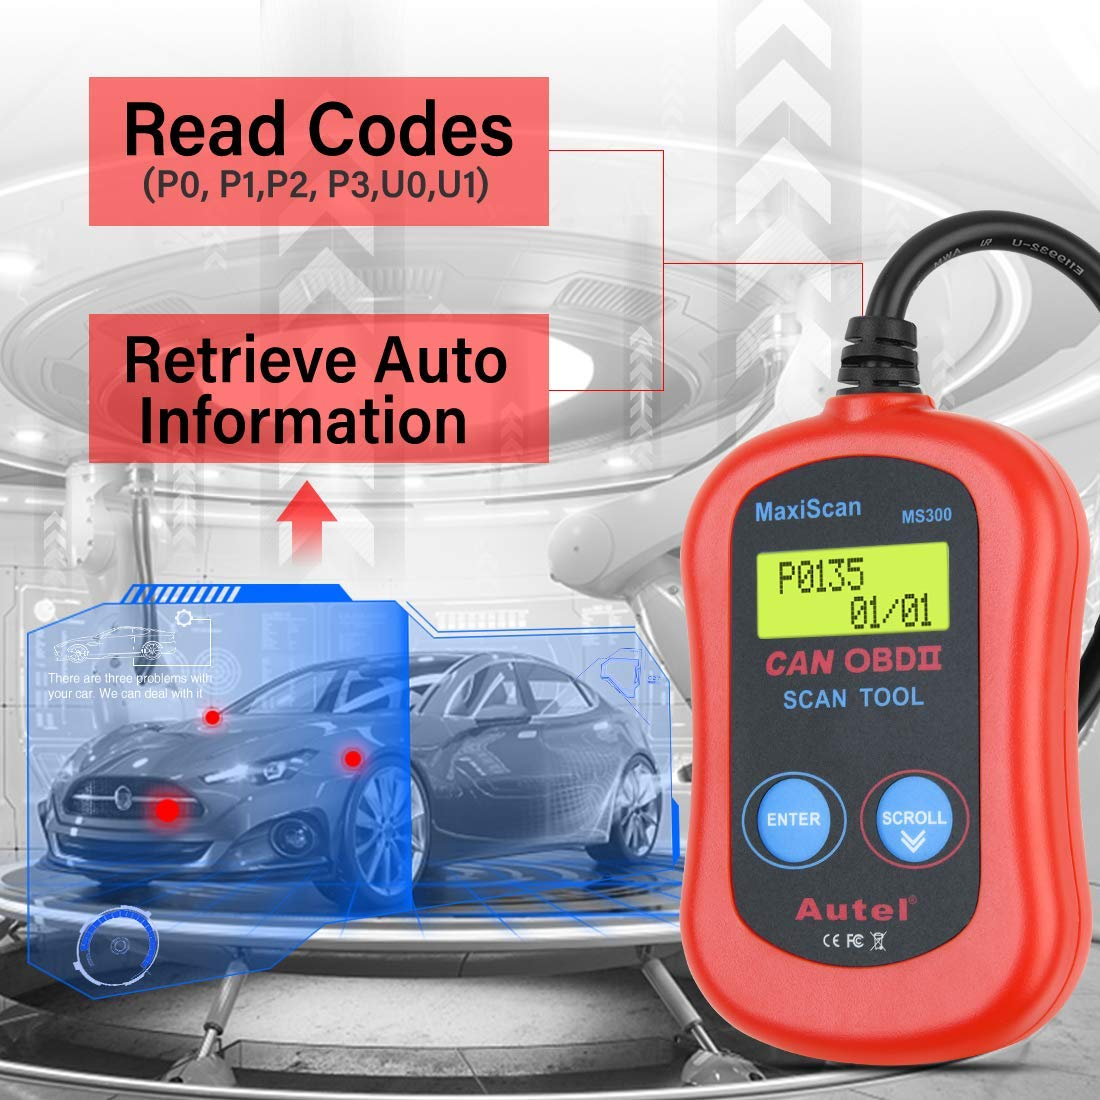 Autel MS300 OBD2 Scanner Fault Code Reader Check Emission Monitor Status Retrieve I//M Readiness Status /& VIN Info CAN Diagnostic Scan Tool Turn Off Check Engine Light Read//Erase Codes